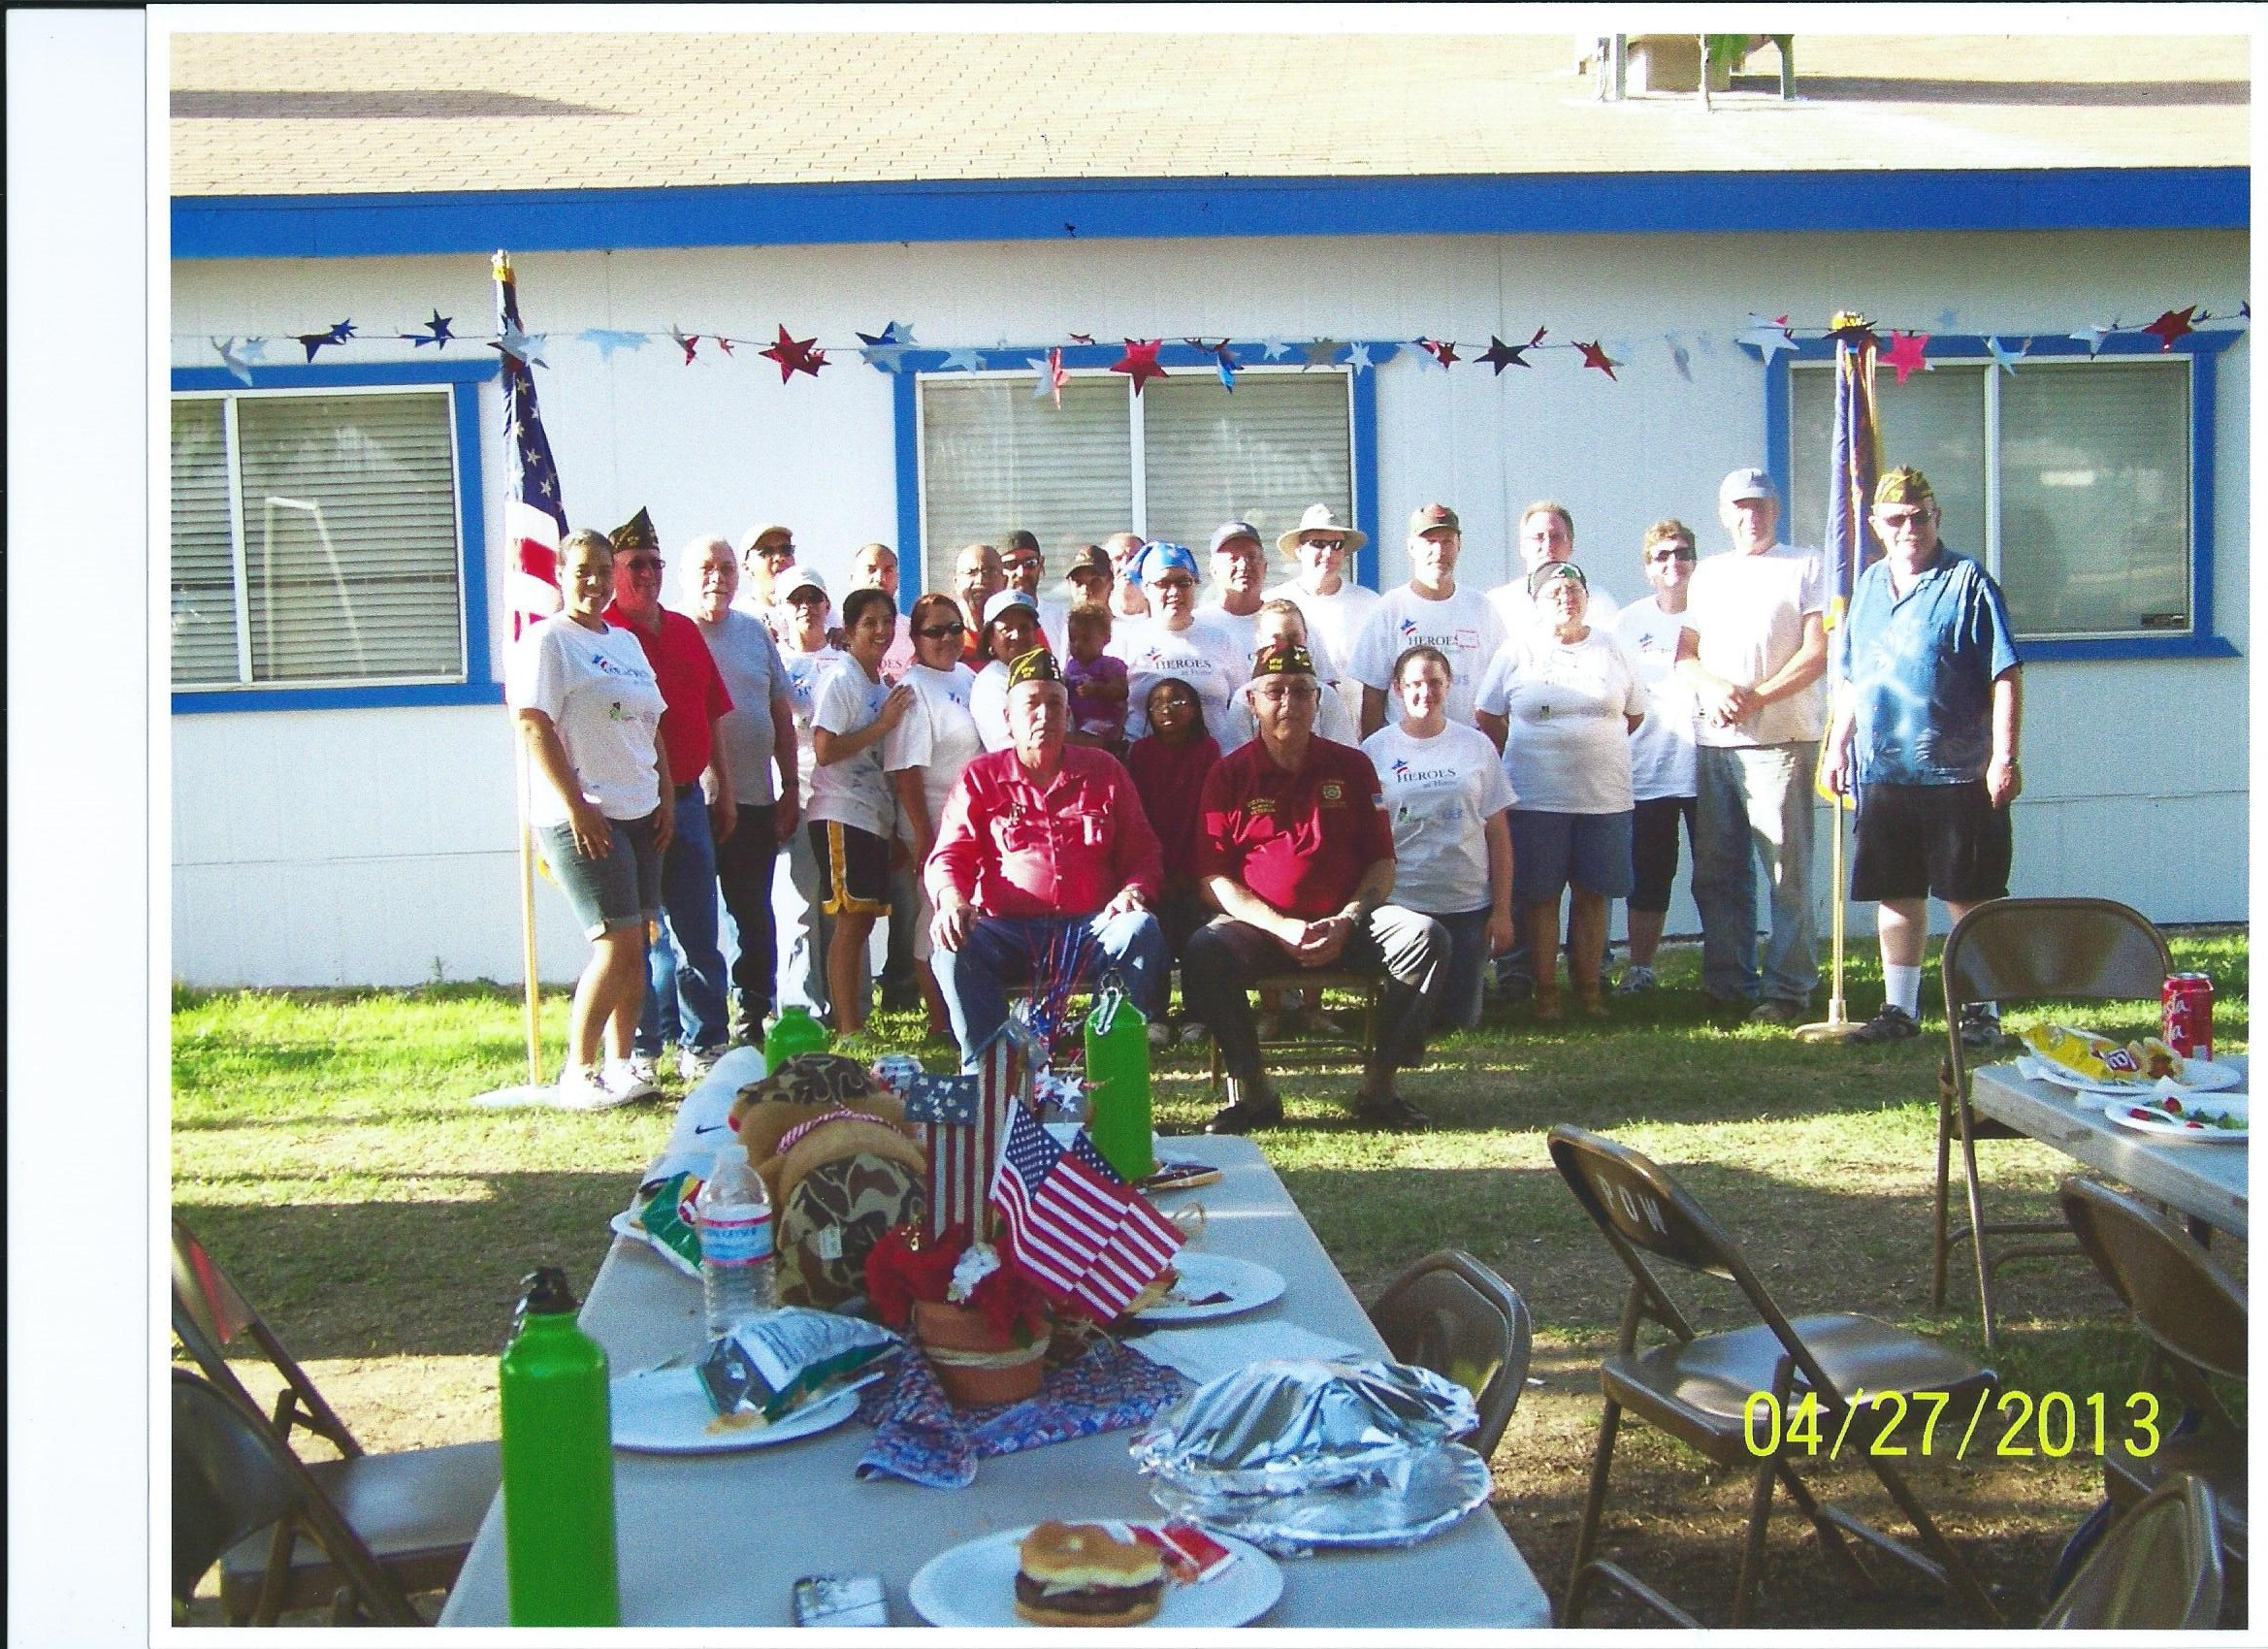 VFW Post 97 group photo